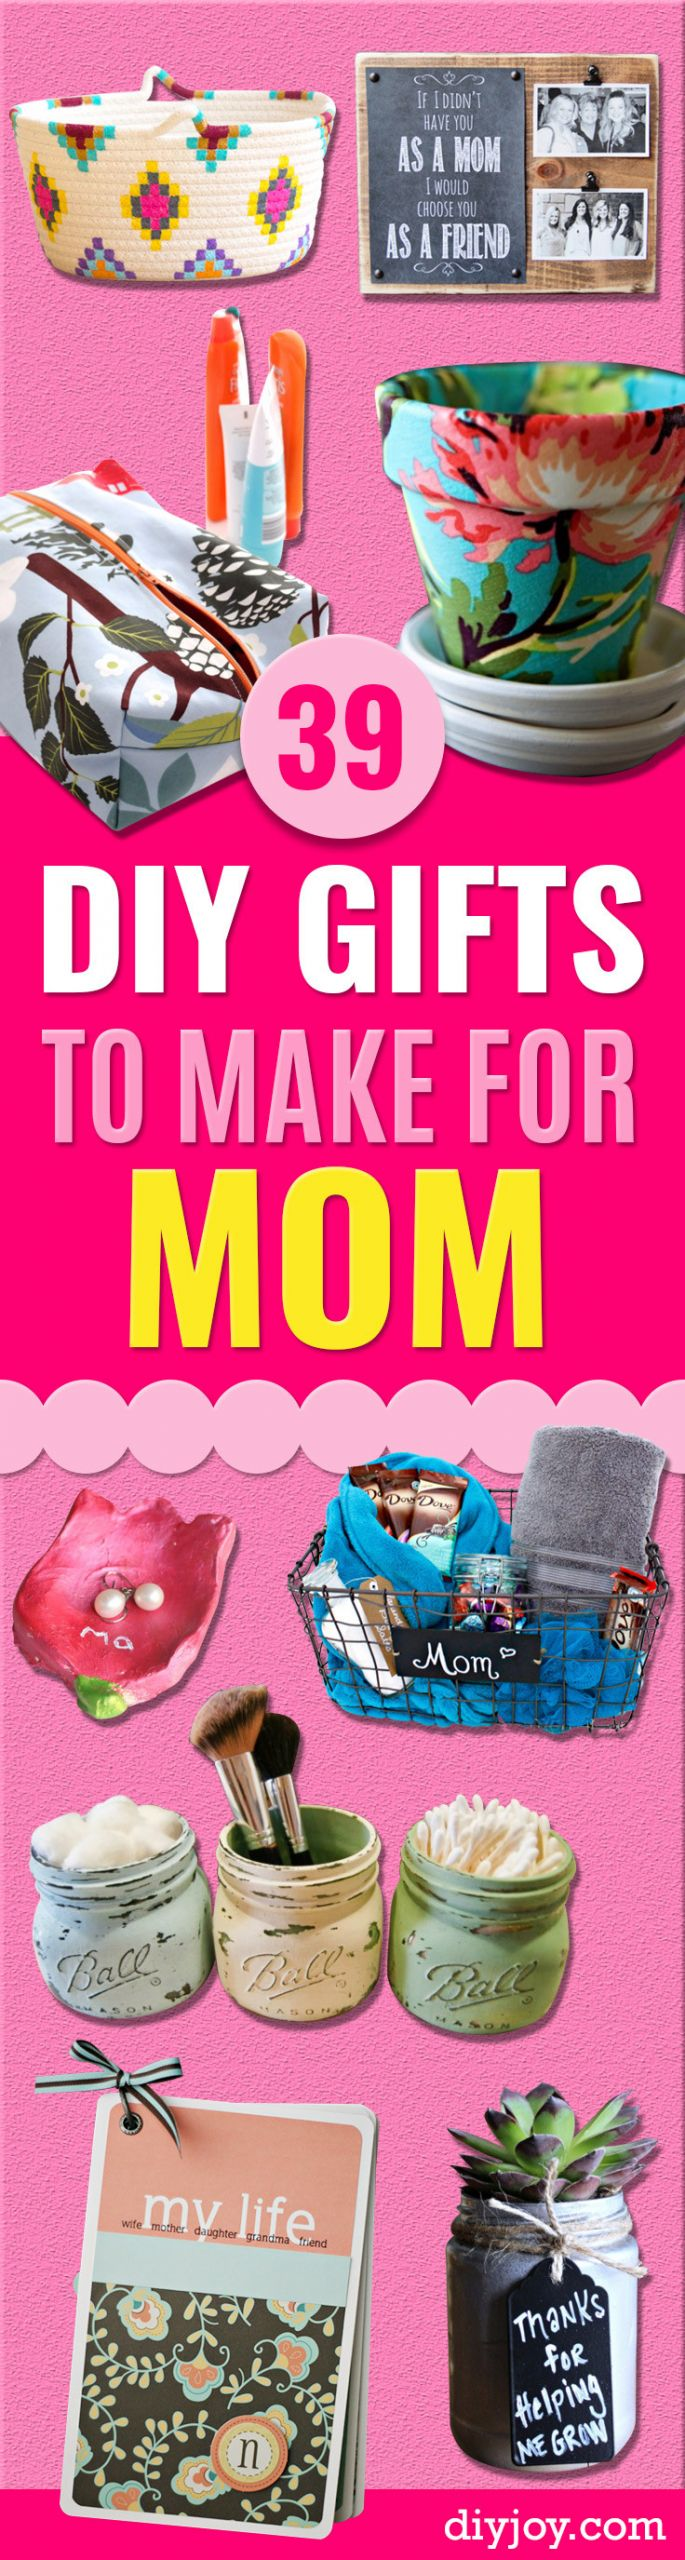 DIY Gift For Your Mom  39 Creative DIY Gifts to Make for Mom